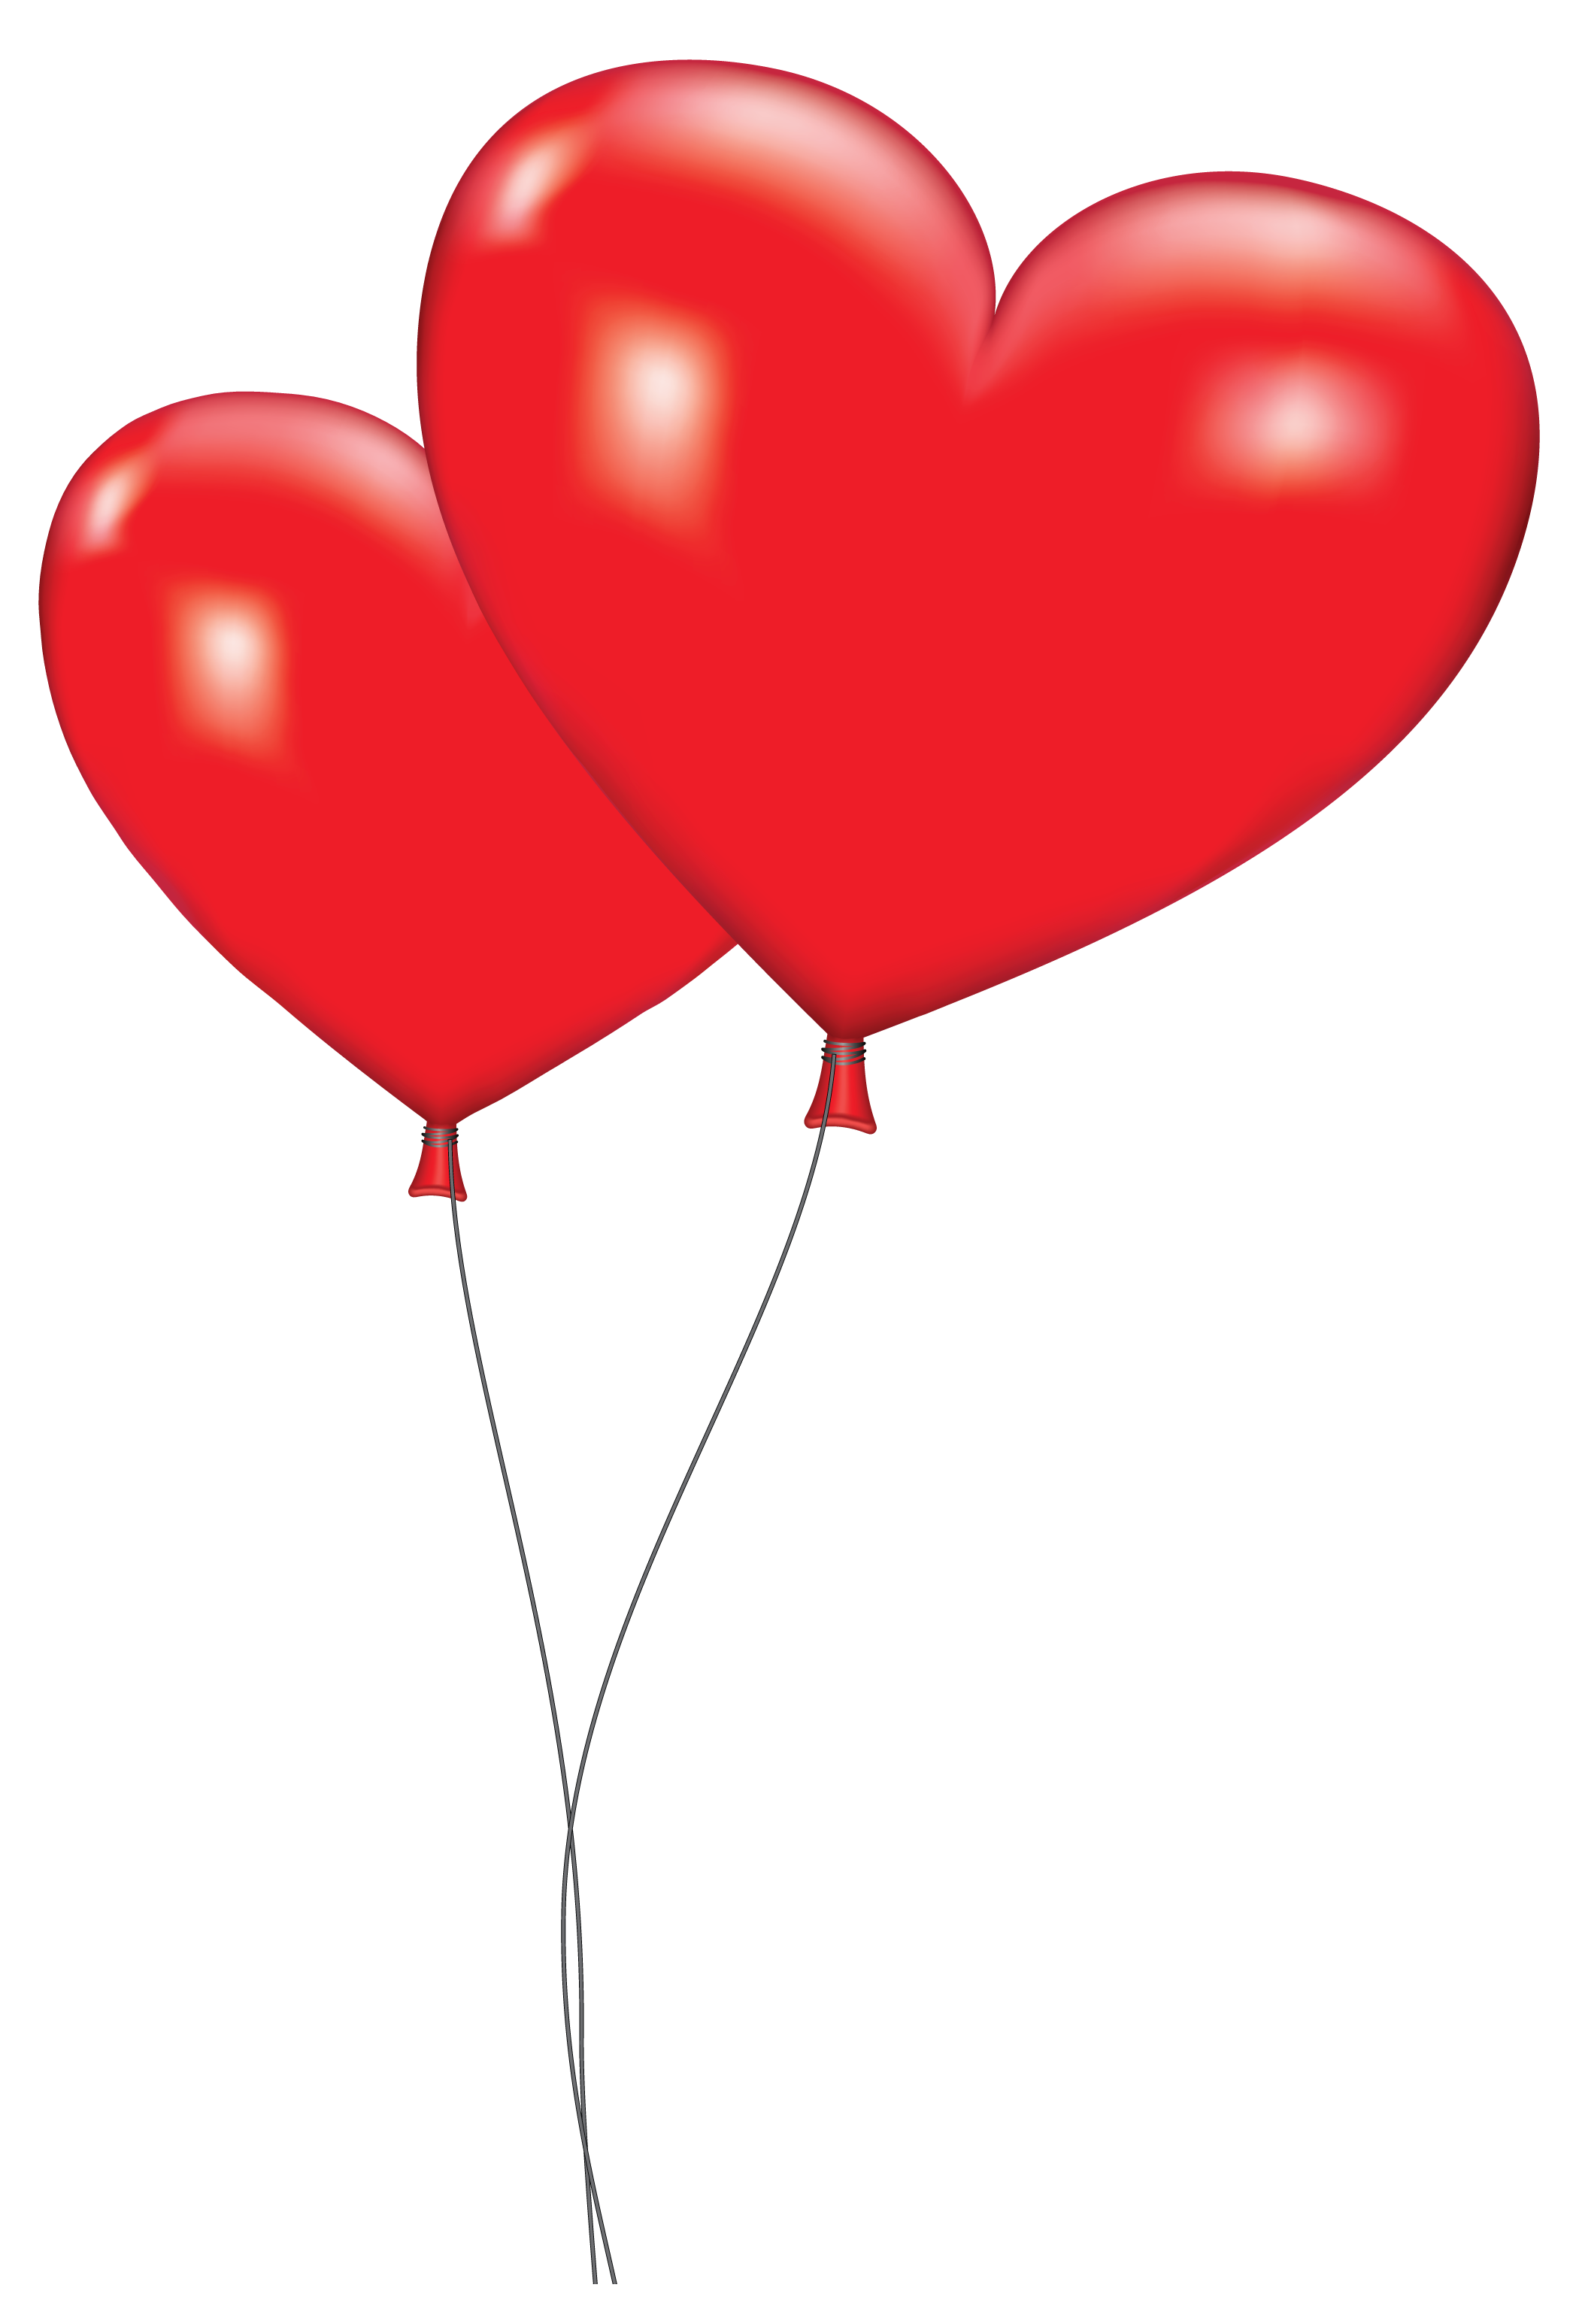 Orange Balloon Clipart Large Red Heart Balloons Png Clipart Picture